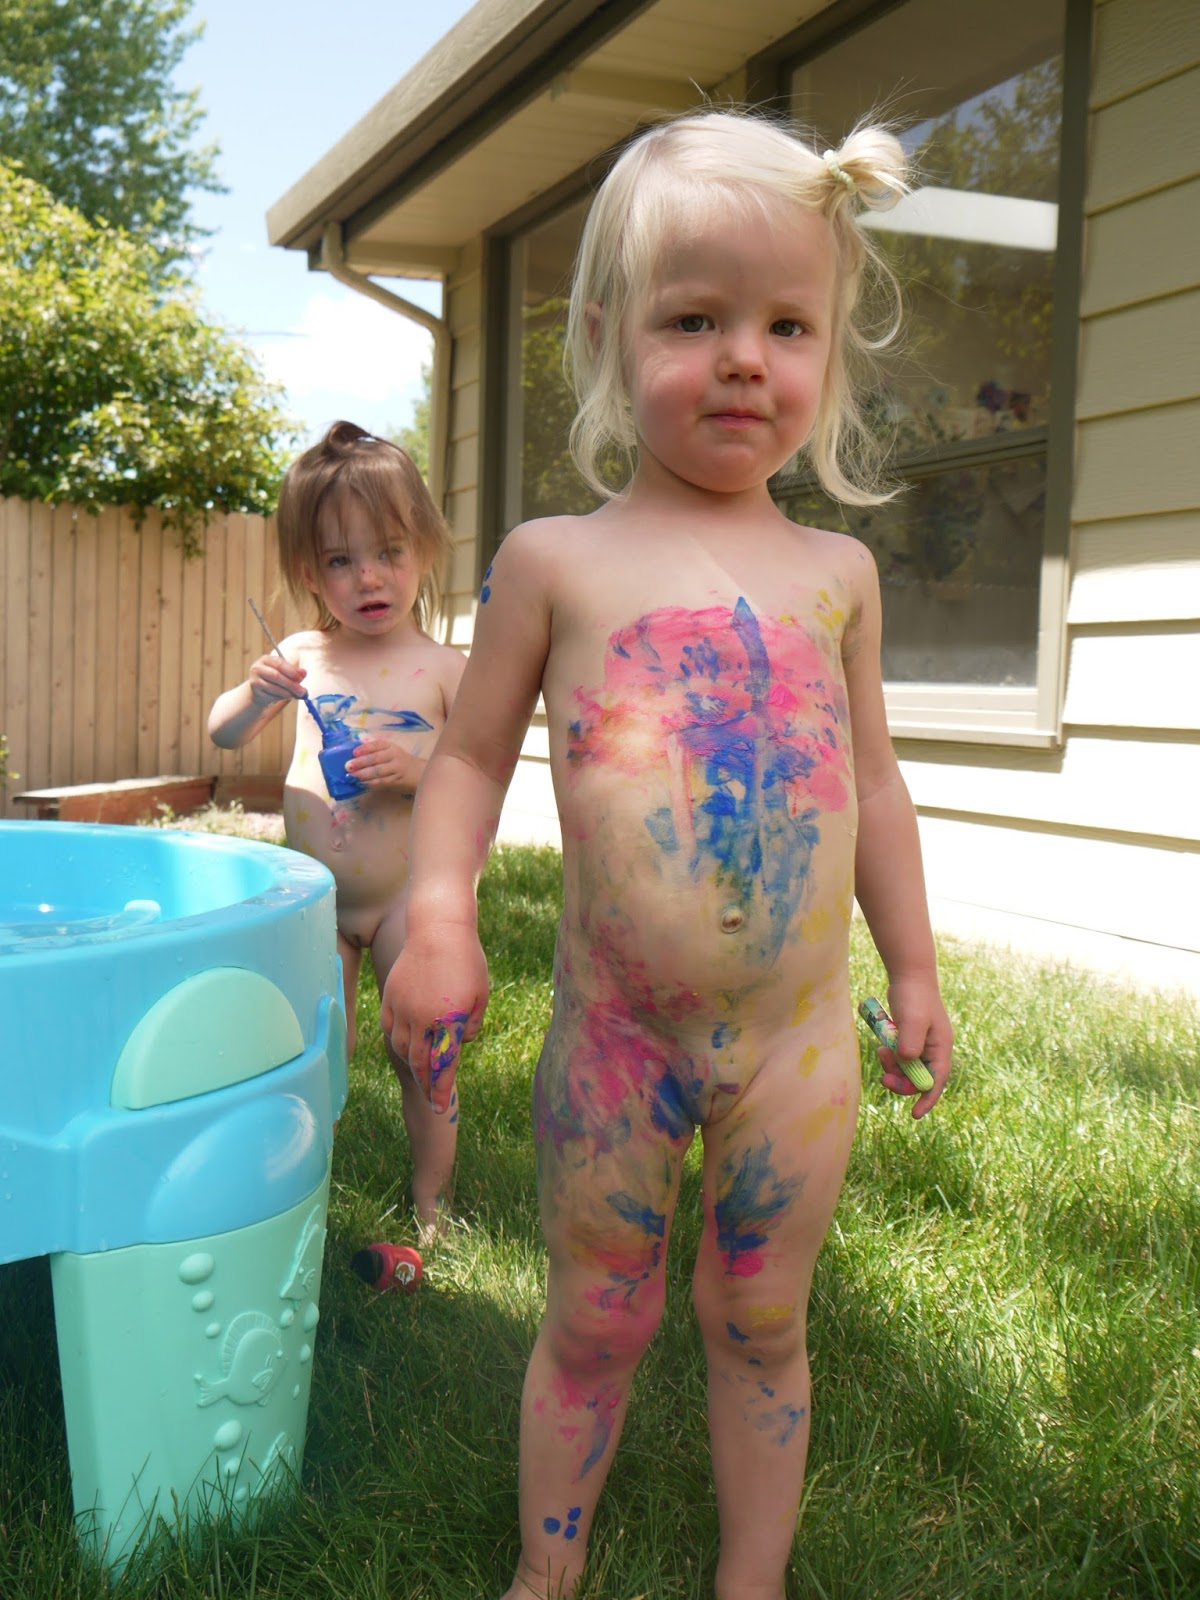 naked little girls with body paint